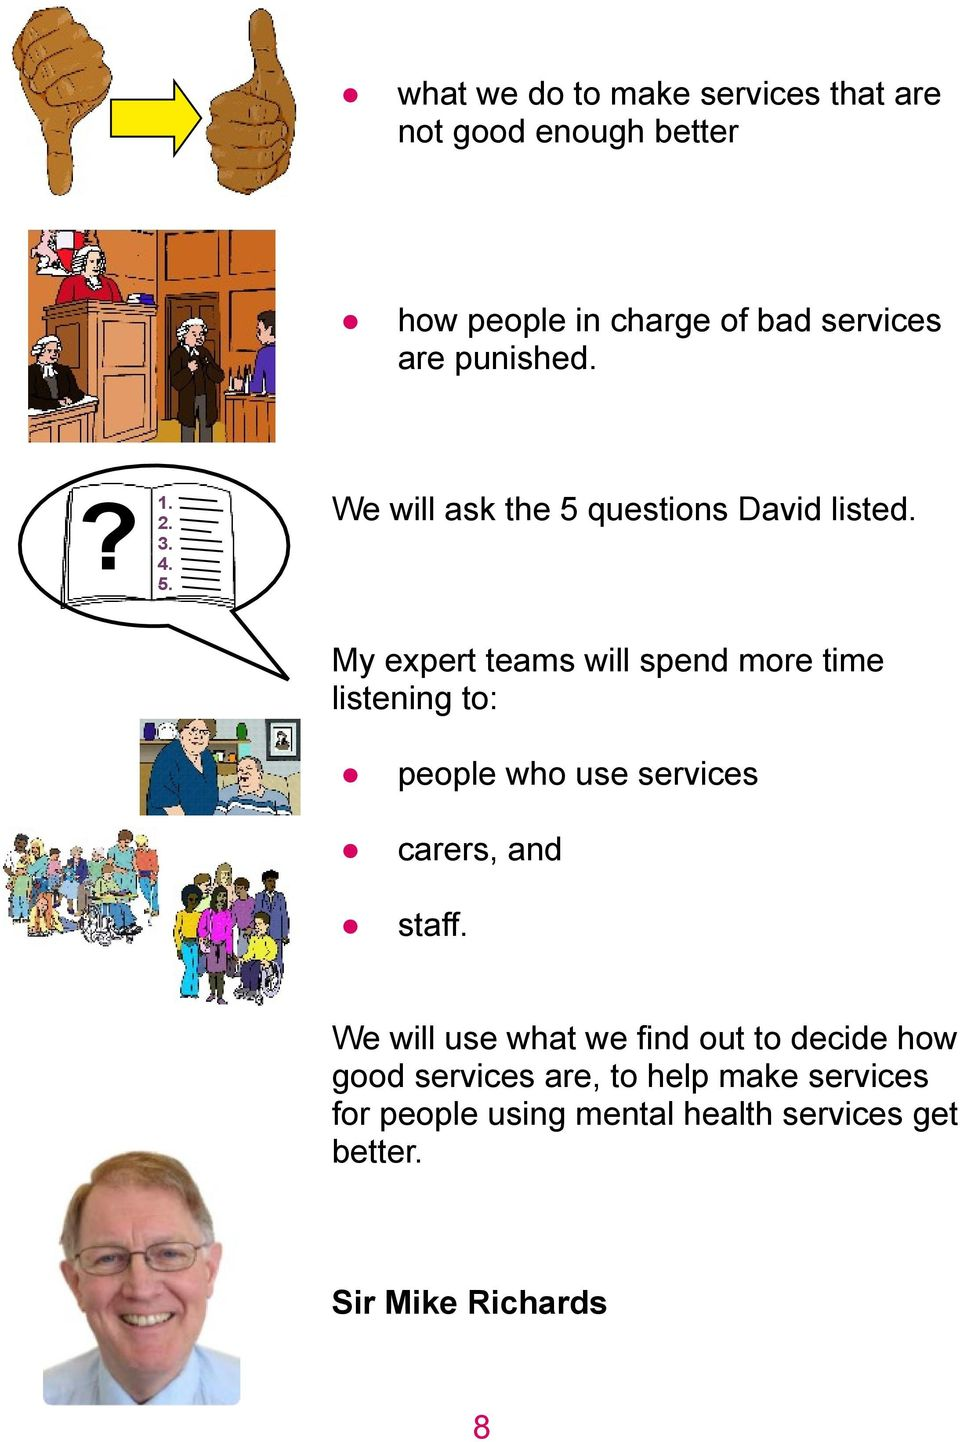 My expert teams will spend more time listening to: people who use services carers, and staff.